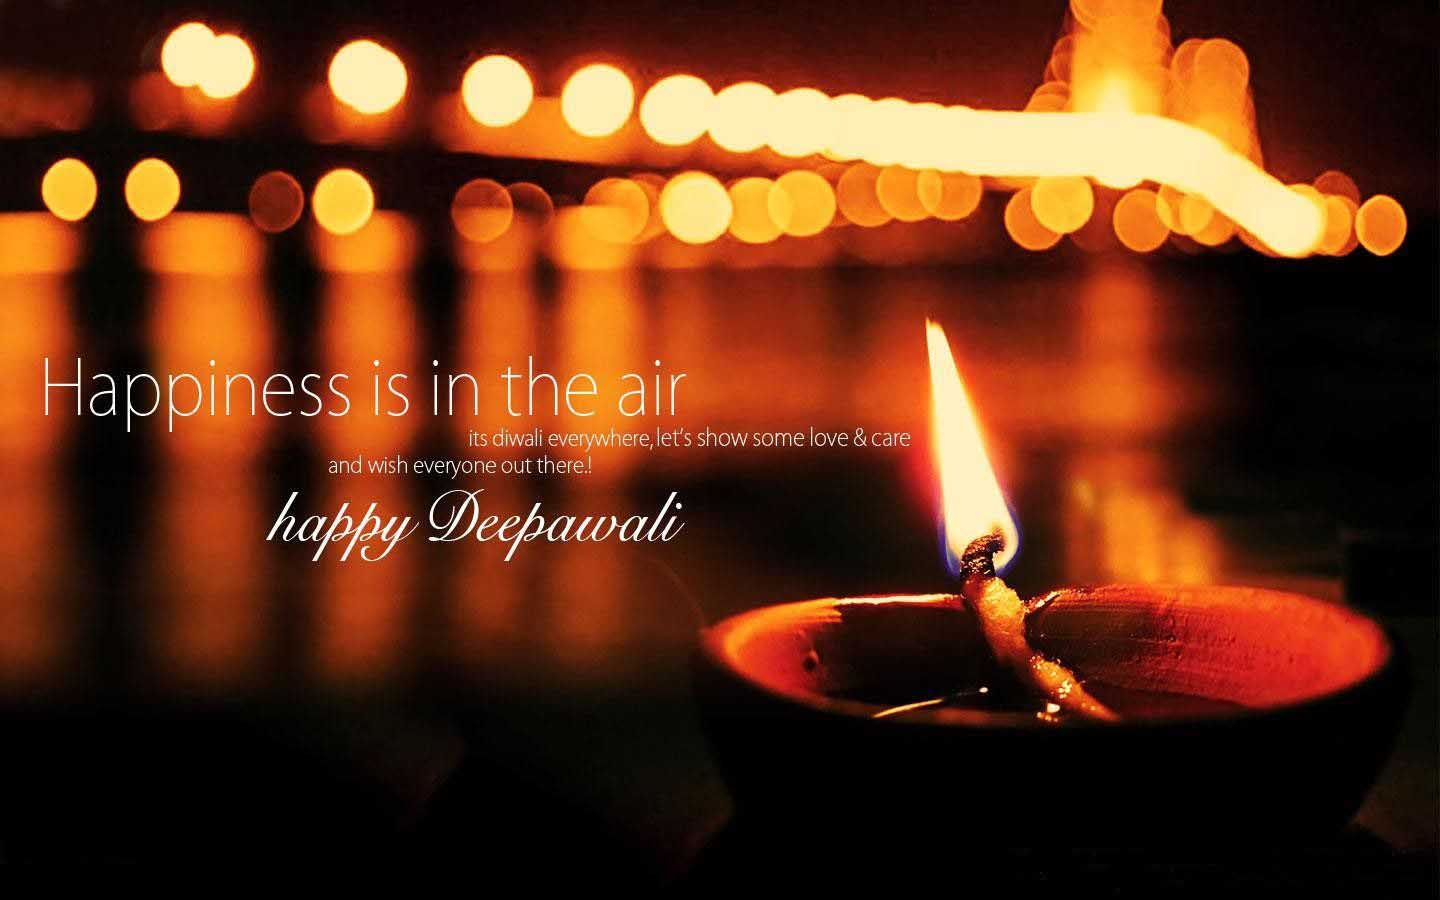 Beautiful Wallpaper High Resolution Diwali - Happy-Diwali-SMS-Messages  2018_80713.jpg